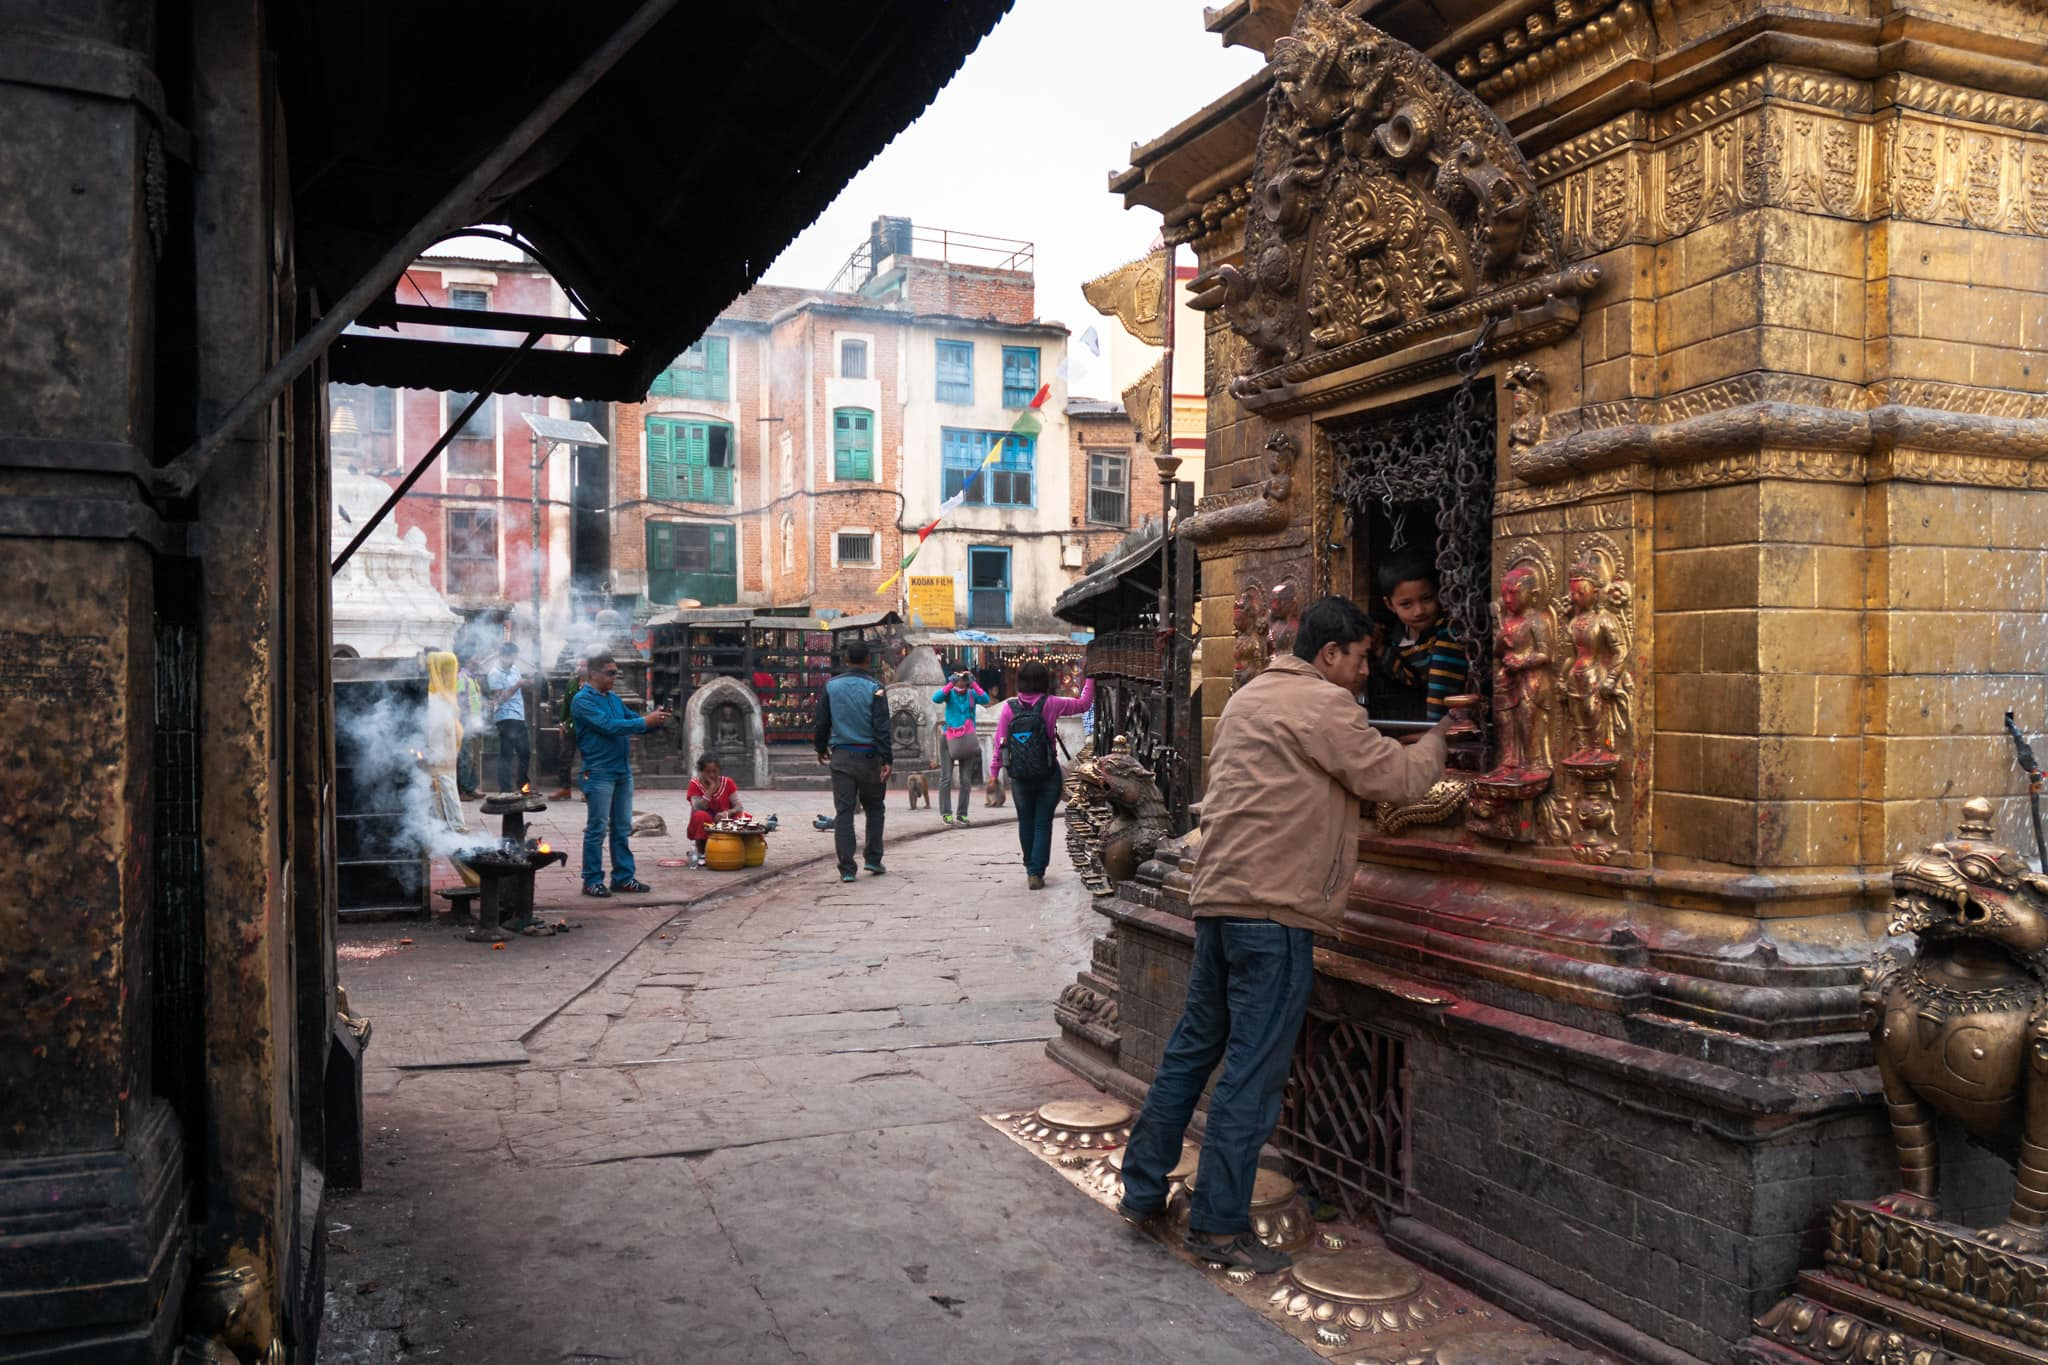 Nepalese child in a shrine at the Swayambhunath (Monkey Temple) complex in Kathmandu, Nepal.